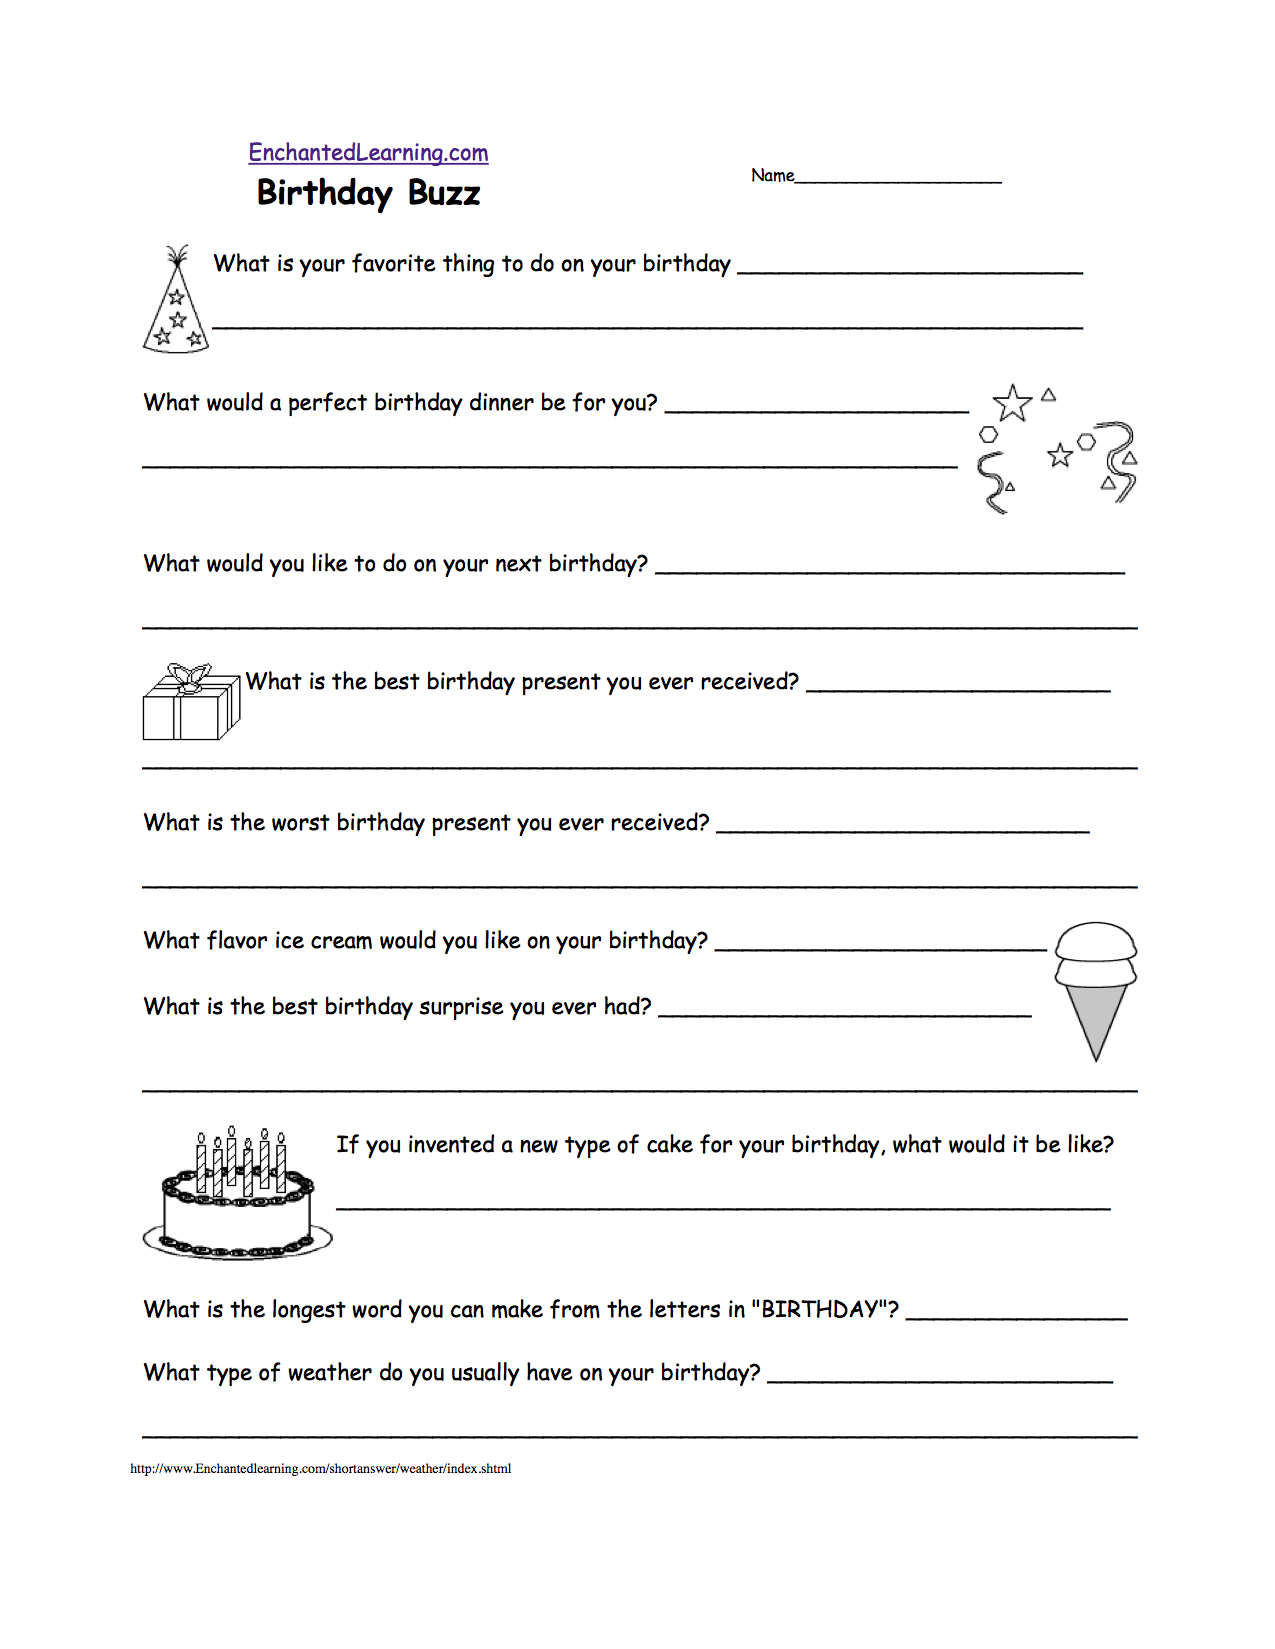 photograph regarding Winter Trivia Questions and Answers Printable named Small Resolution Quizzes - Printable -